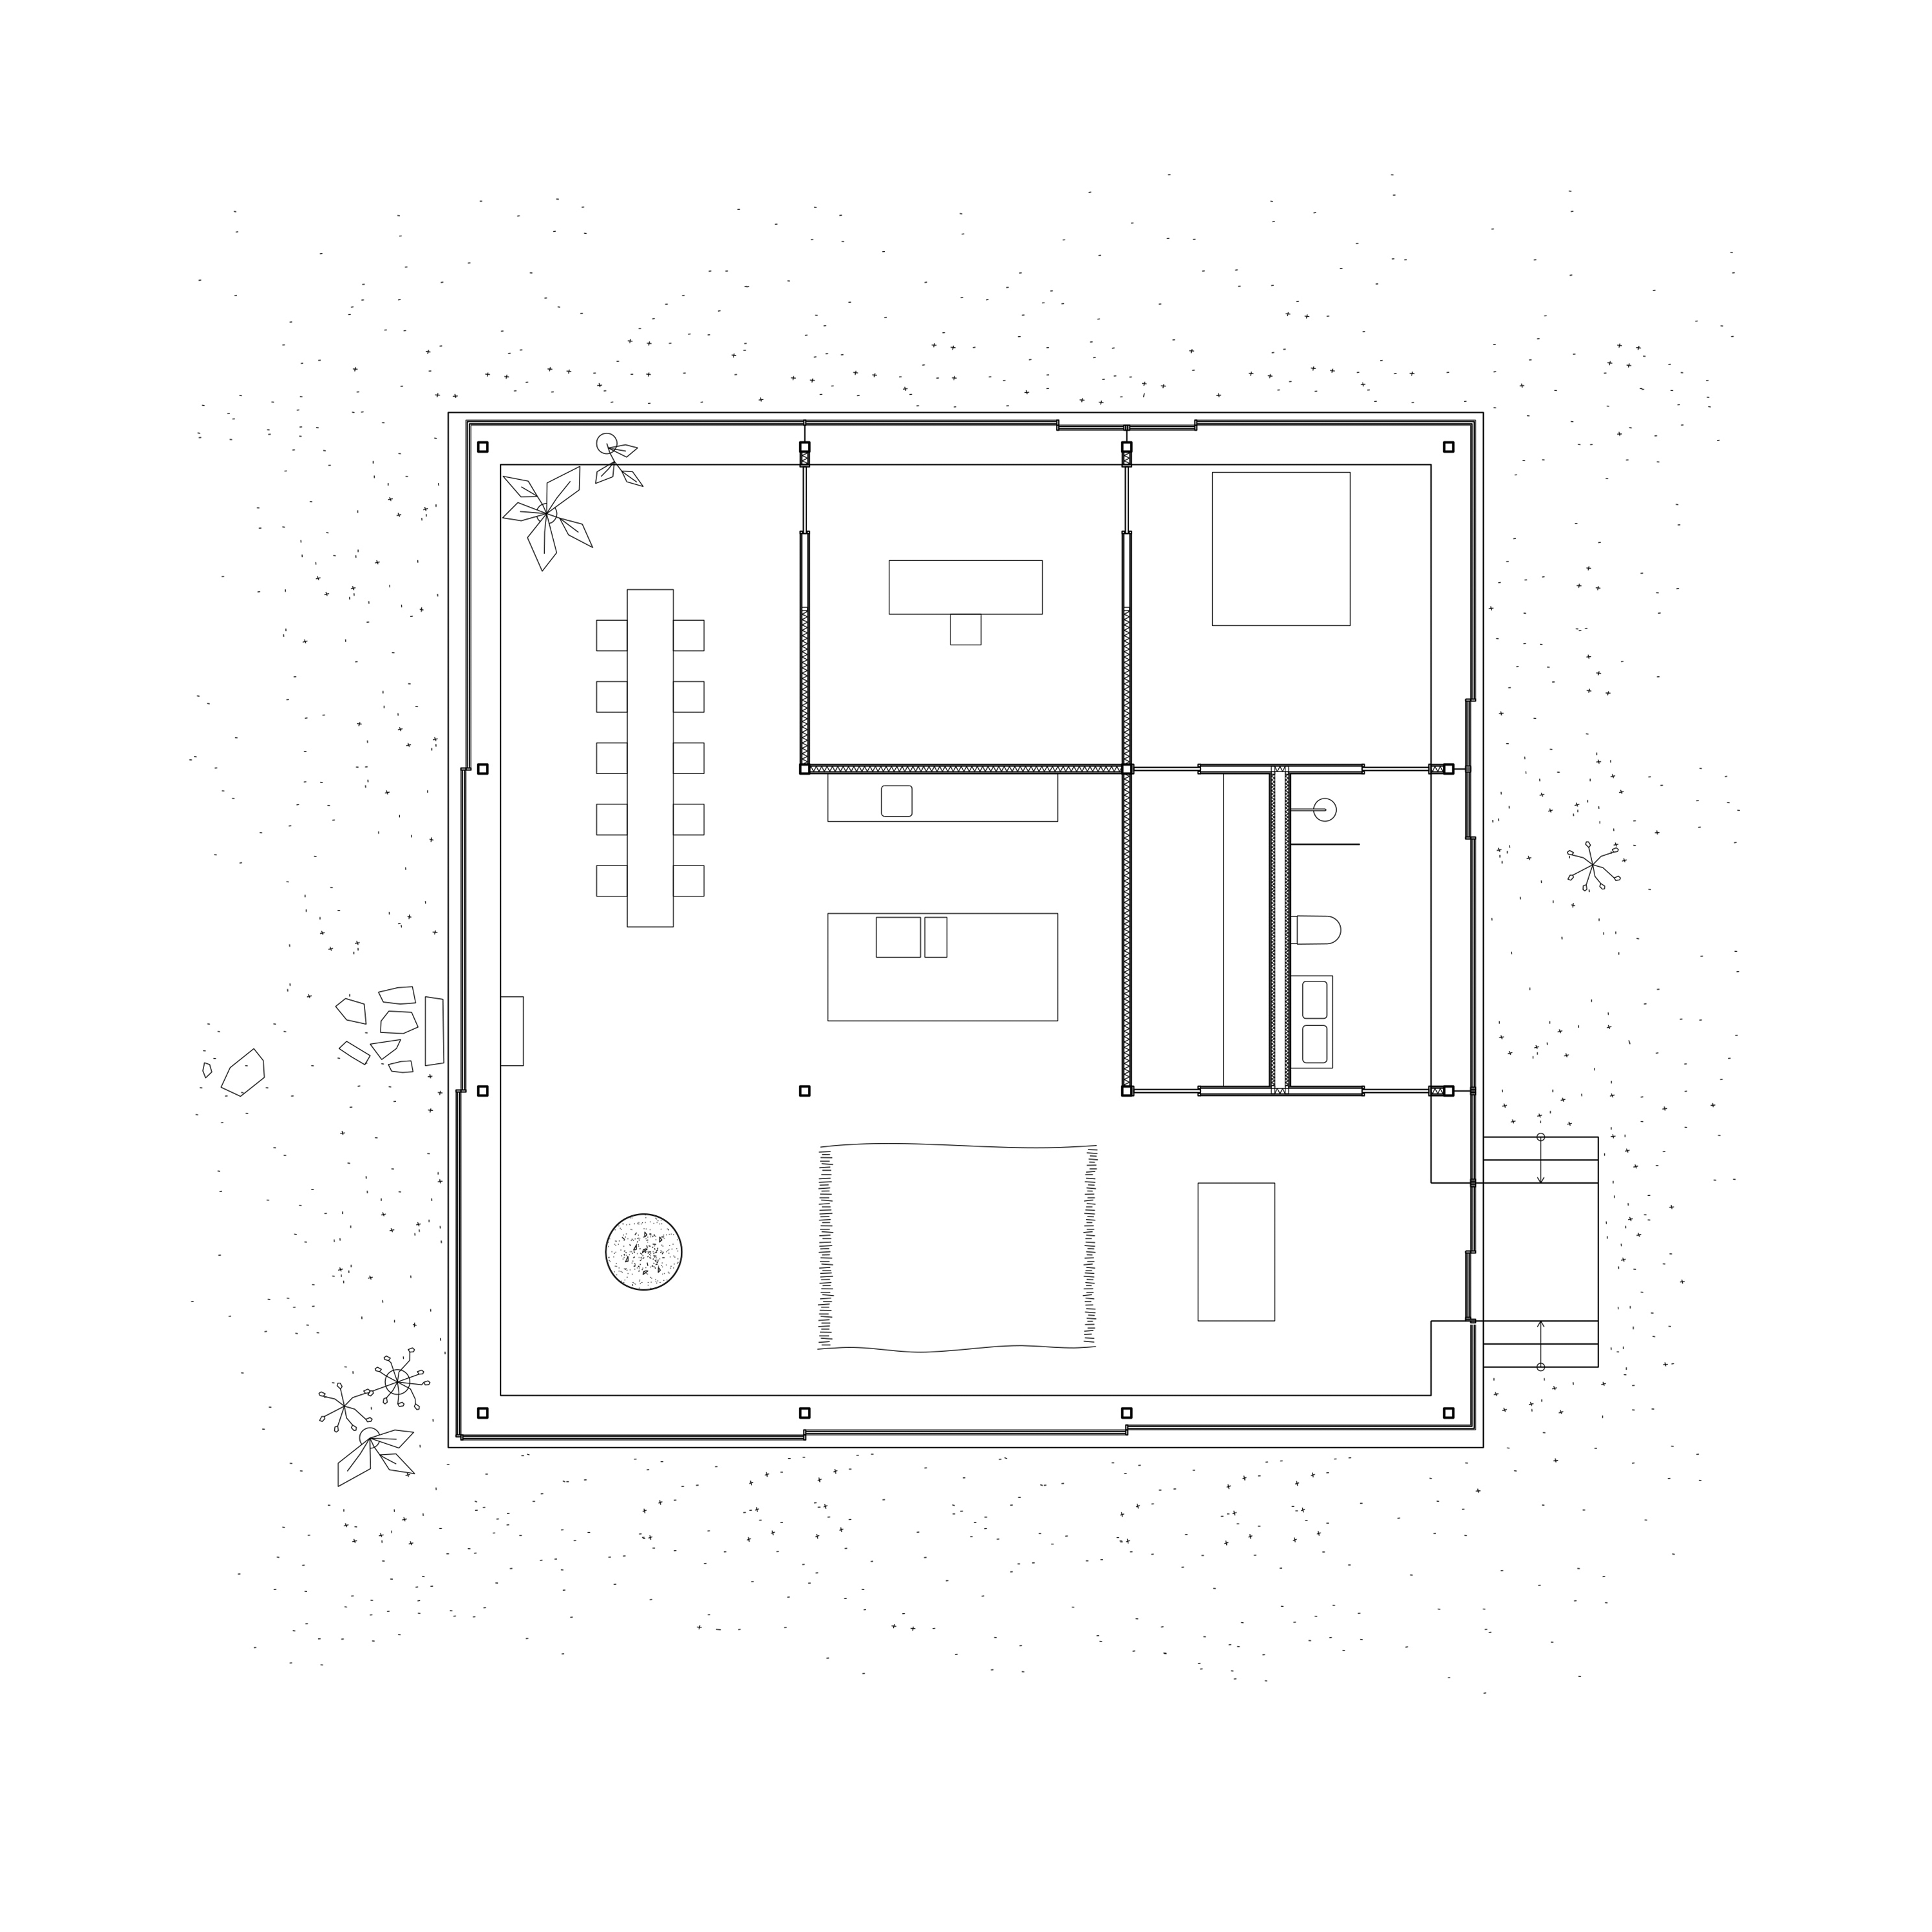 Pin By Malwina Gruszecka On House Plans Concrete Floors How To Plan Floor Plans